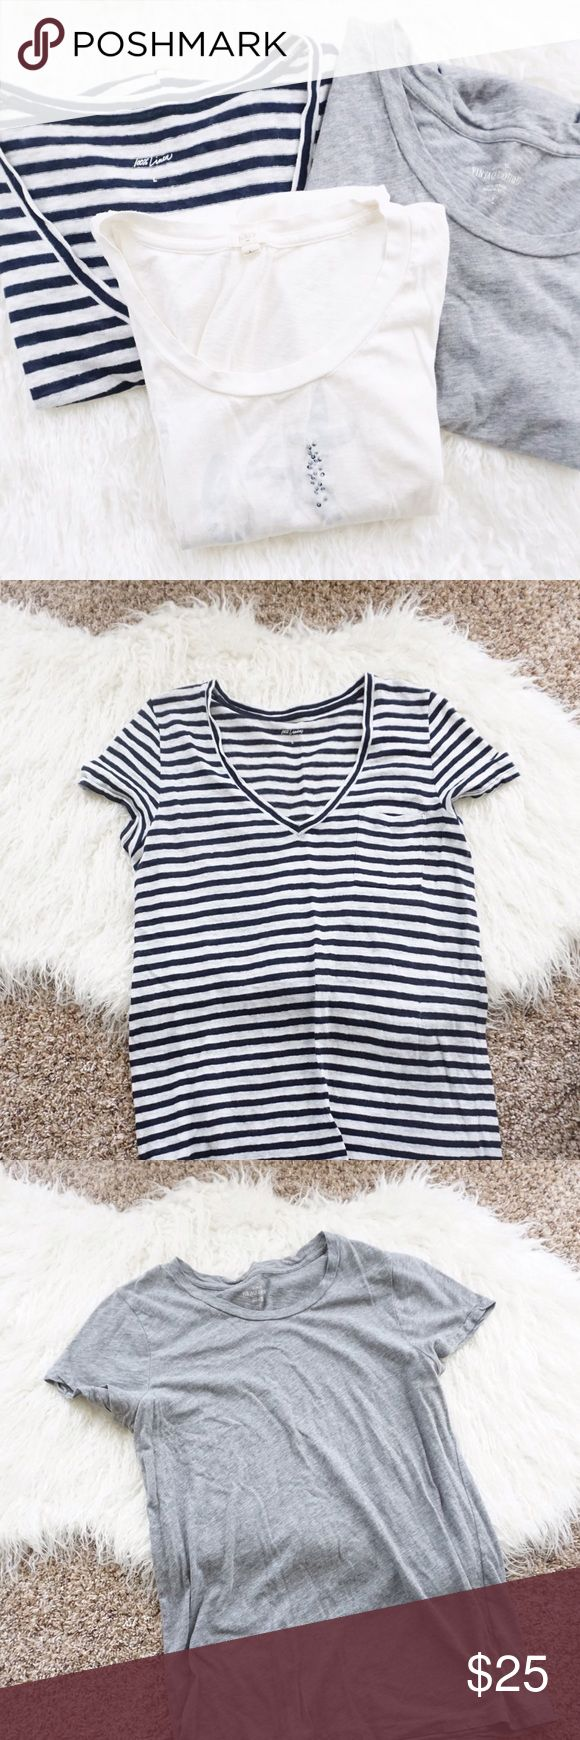 J.Crew Neutral Basic Tees Bundle J.Crew neutral Tees Bundle size large. Includes one black and white 100% linen, one gray vintage cotton scoop neck, and one Cest Bon graphic tee. In excellent condition with no stains rips or tears. J. Crew Tops Tees - Short Sleeve